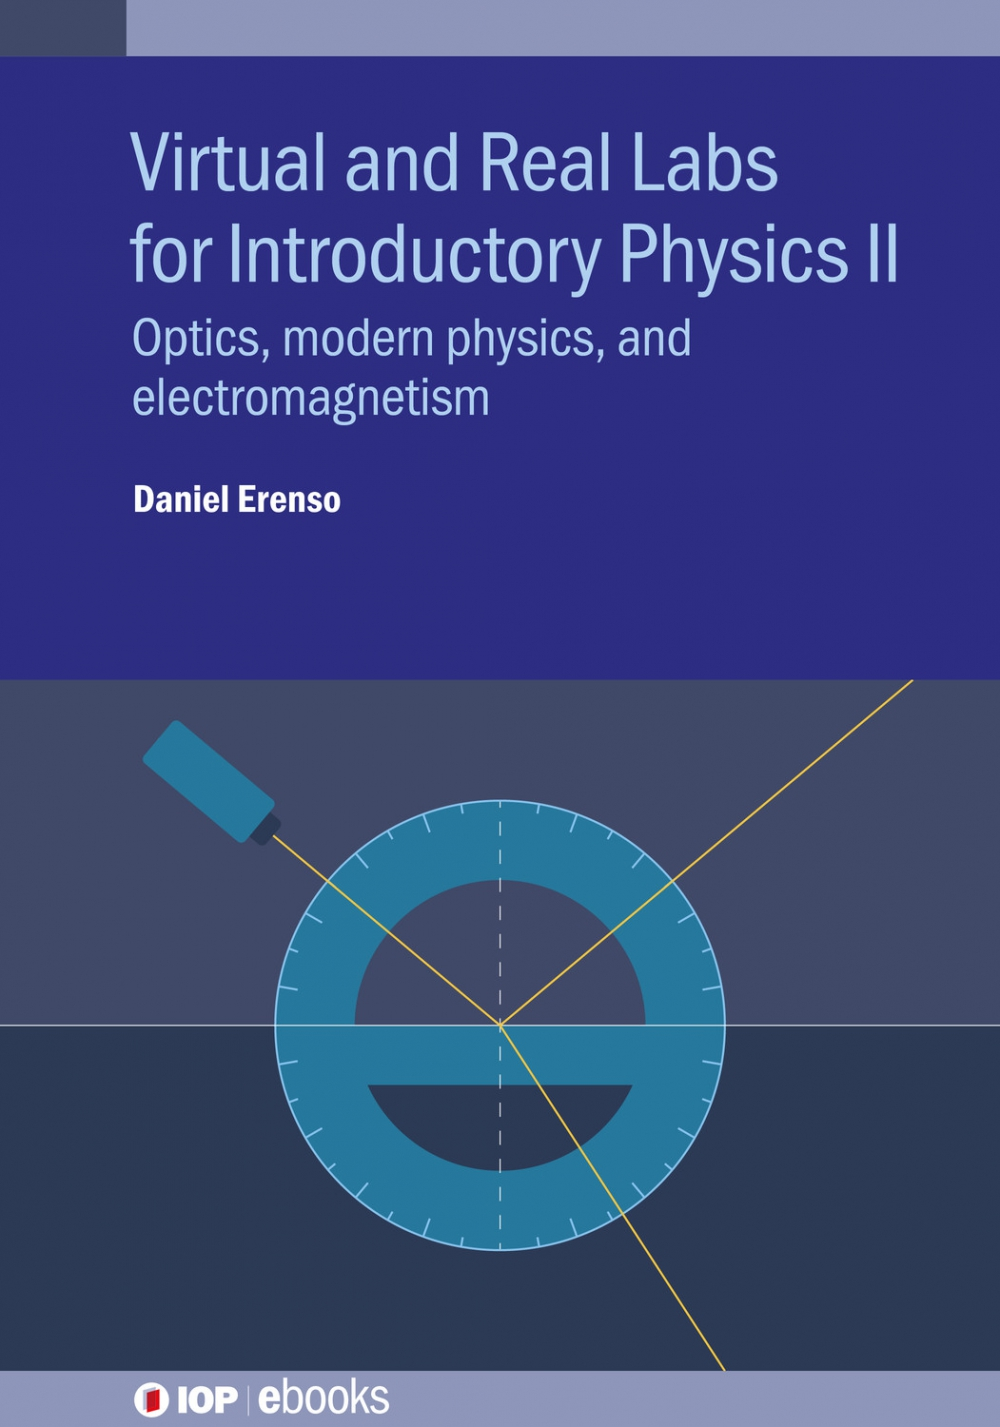 Jacket image for Virtual and Real Labs for Introductory Physics II